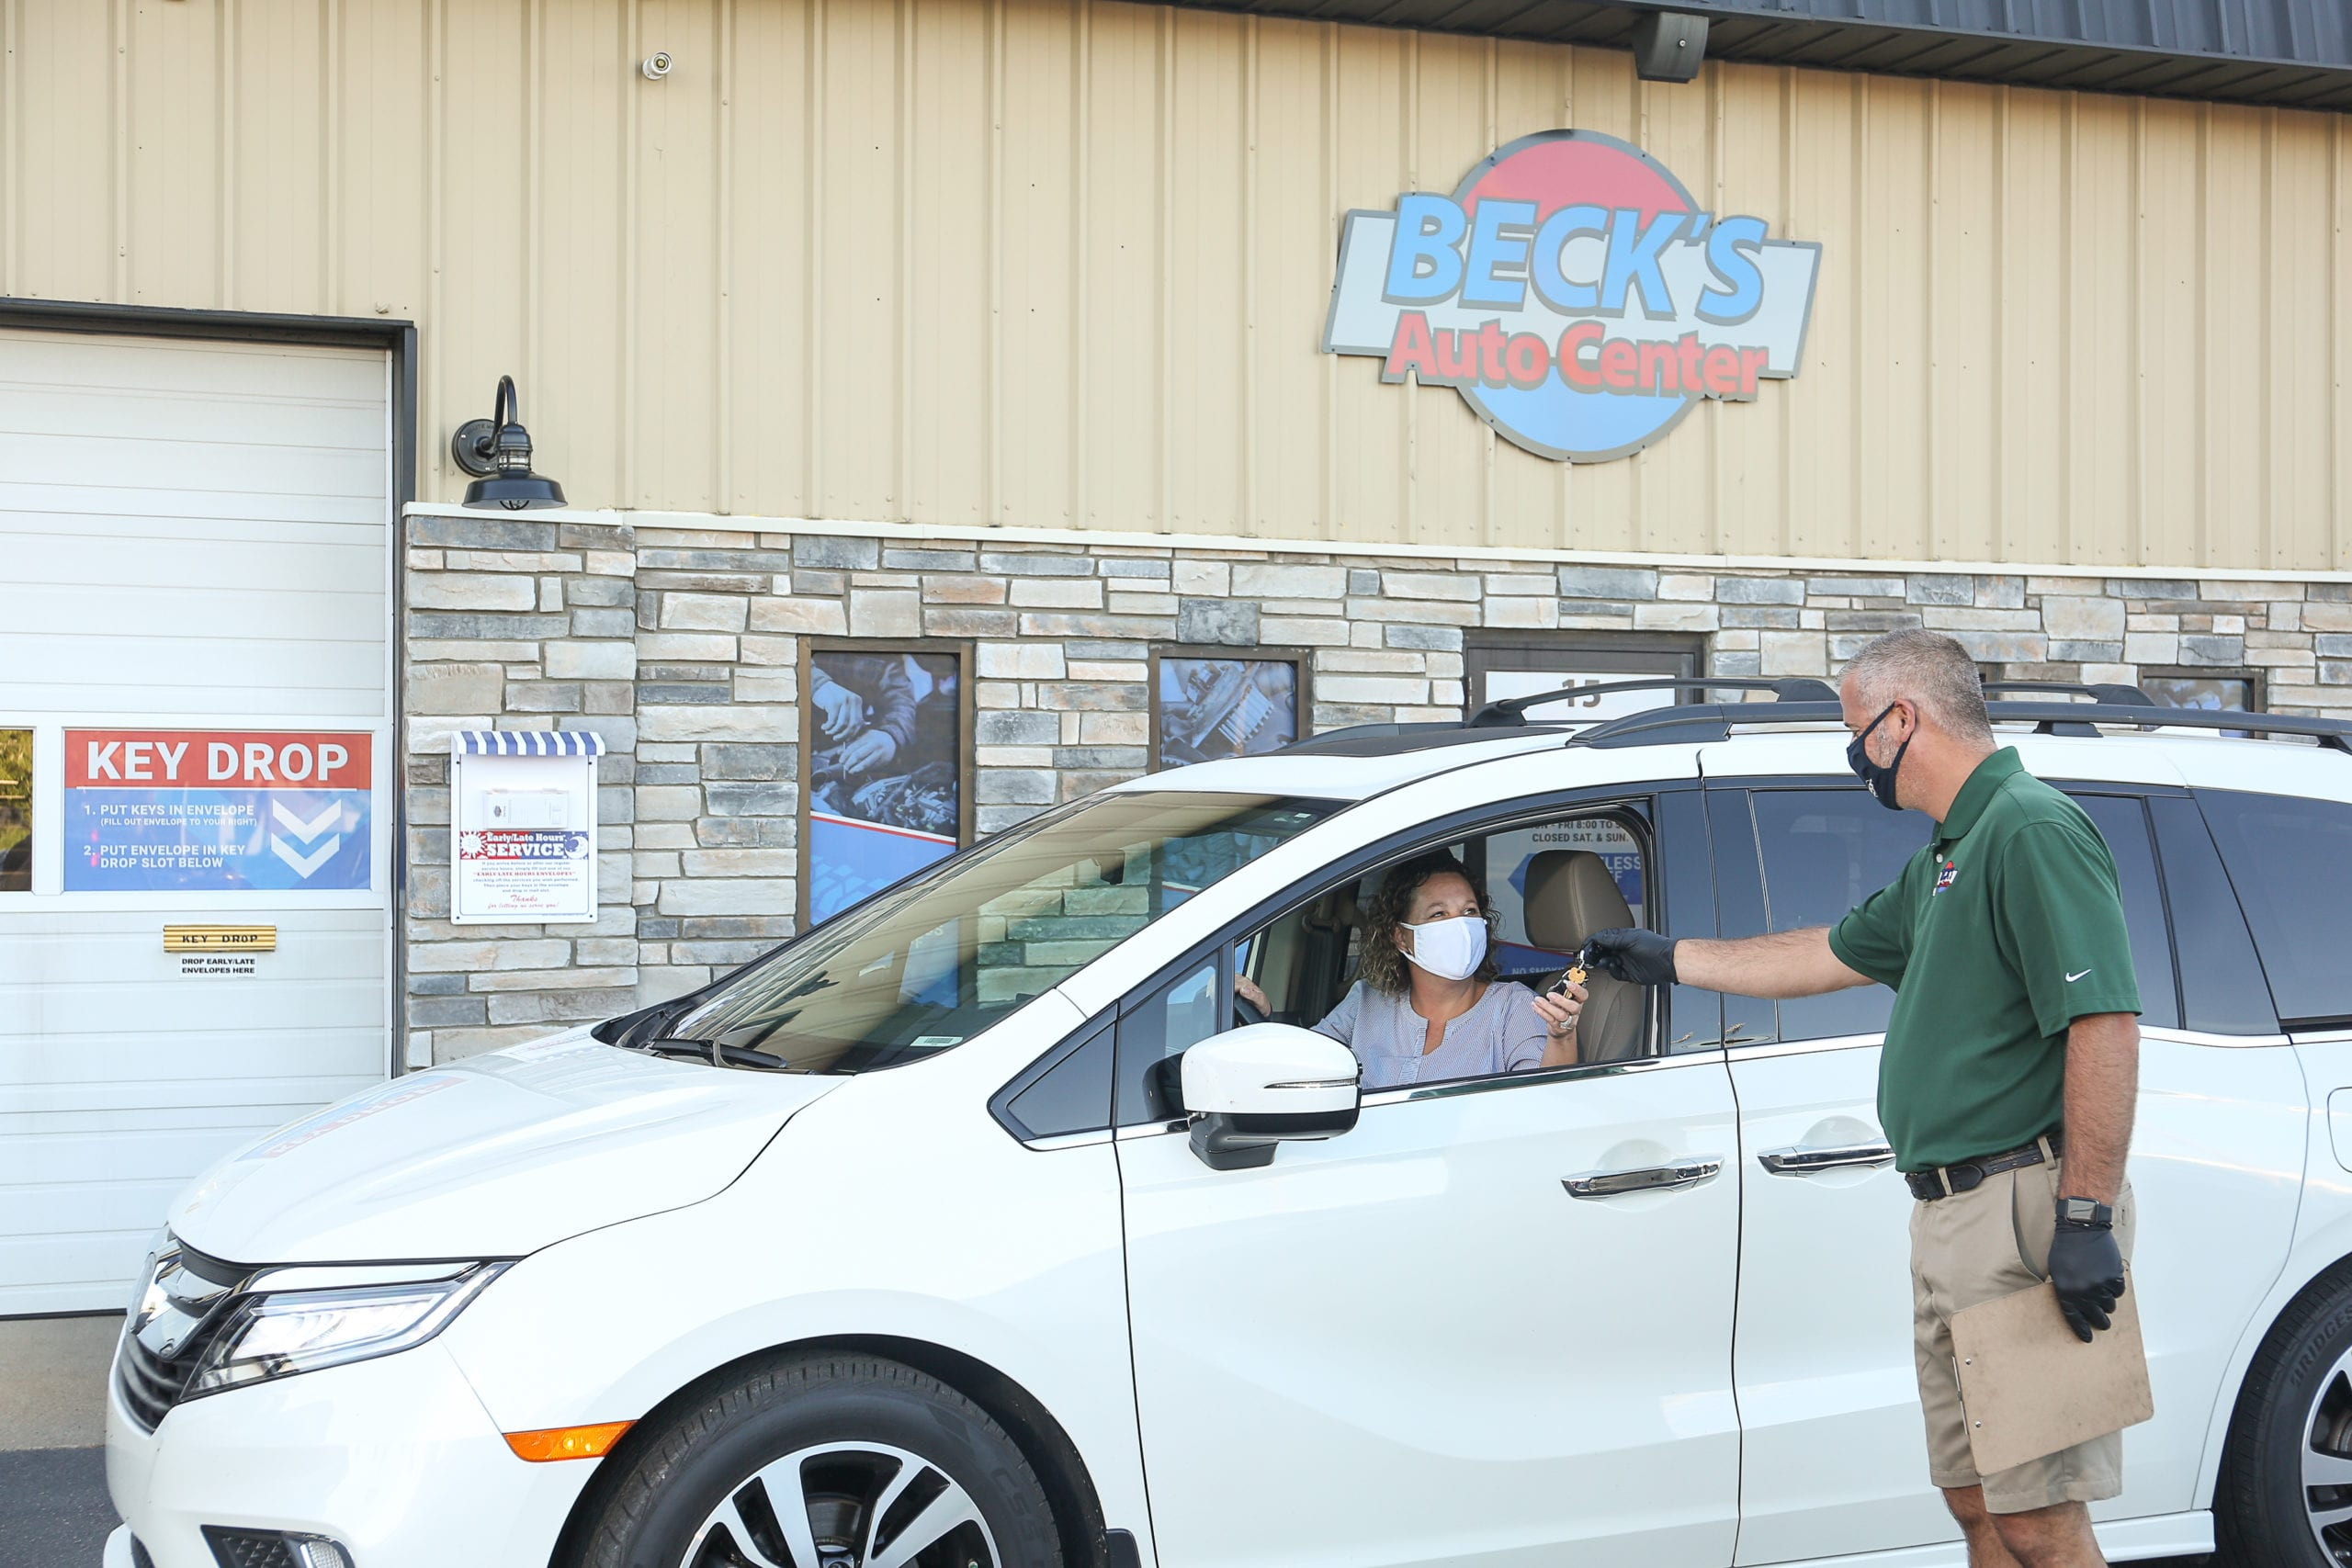 partner with beck's auto center lafayette indiana and be educated through the entire vehicle repair process